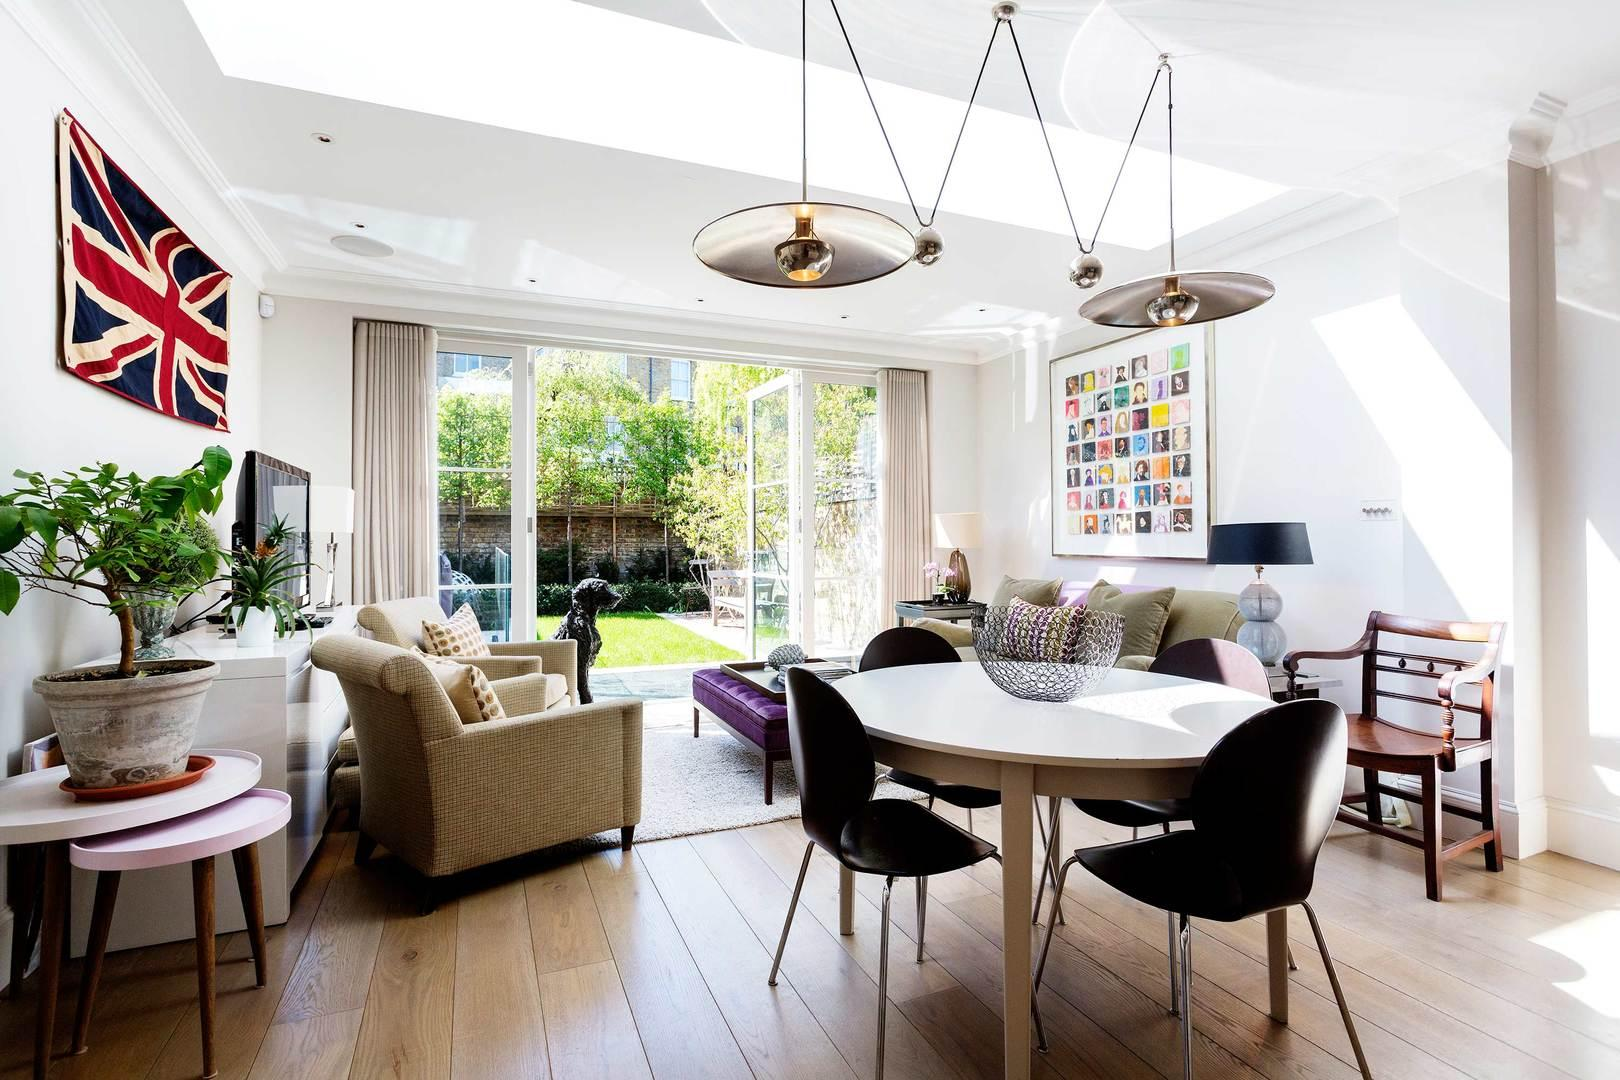 Property Image 1 - Elegant West London Home with Private Garden